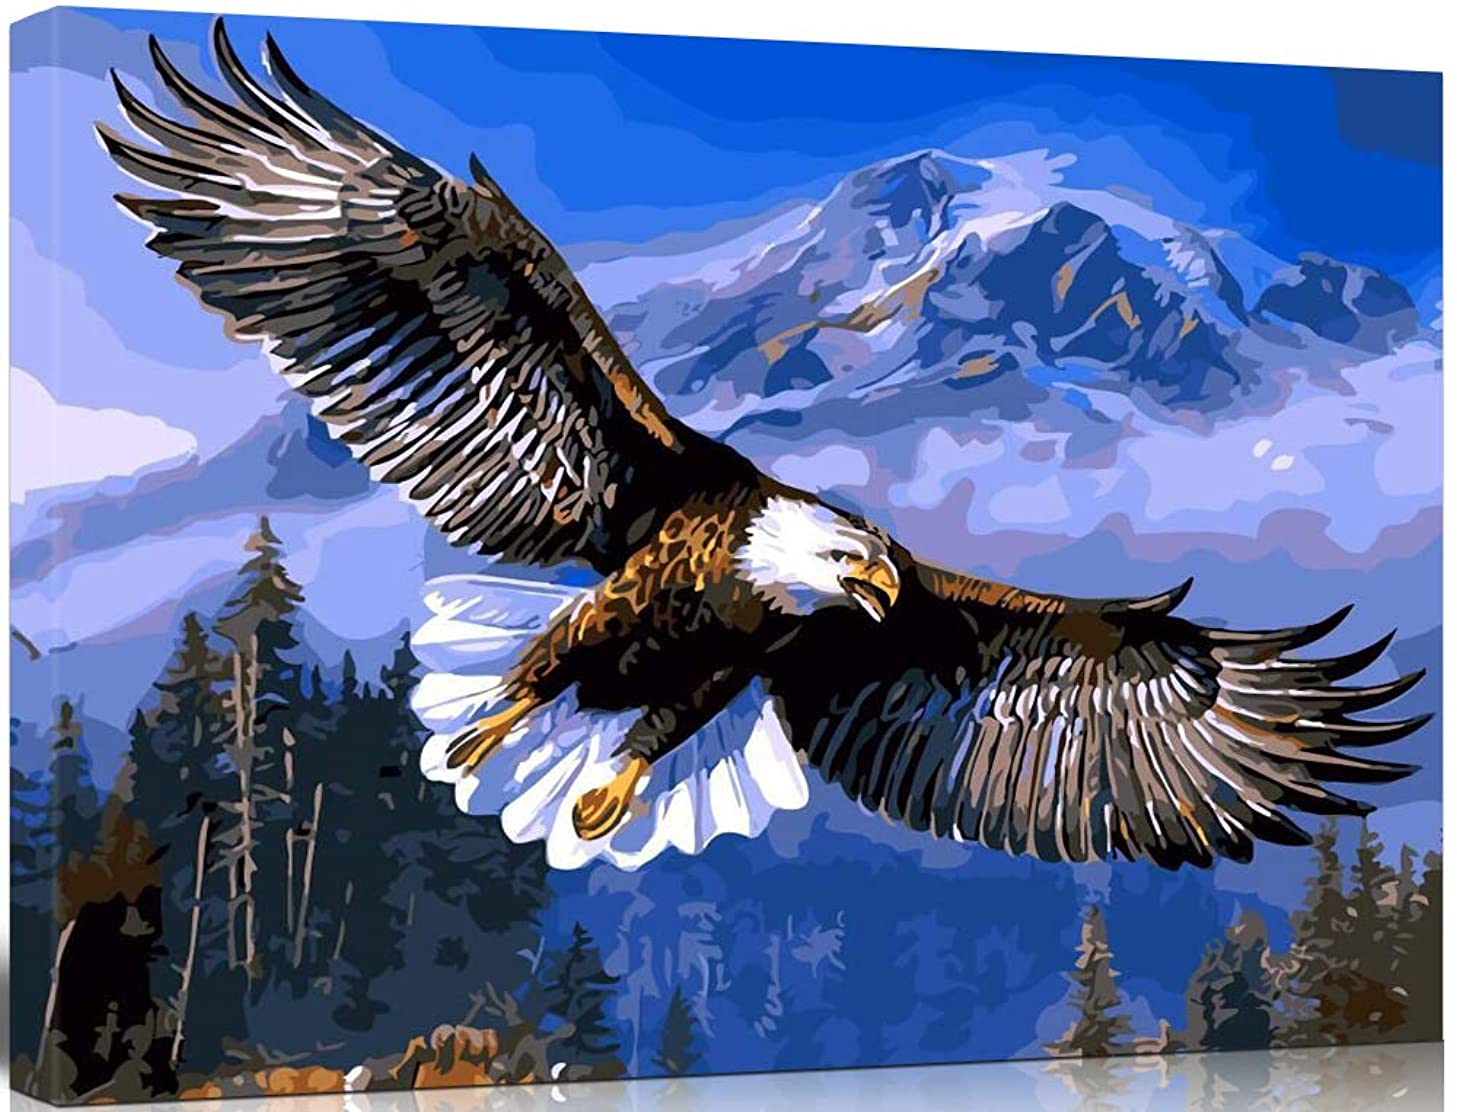 SHUAXIN [Wooden Framed] DIY Oil Painting, Paint by Number Kits Home Decor Wall Pic Value Gift- Flying Eagle 16X20 Inch